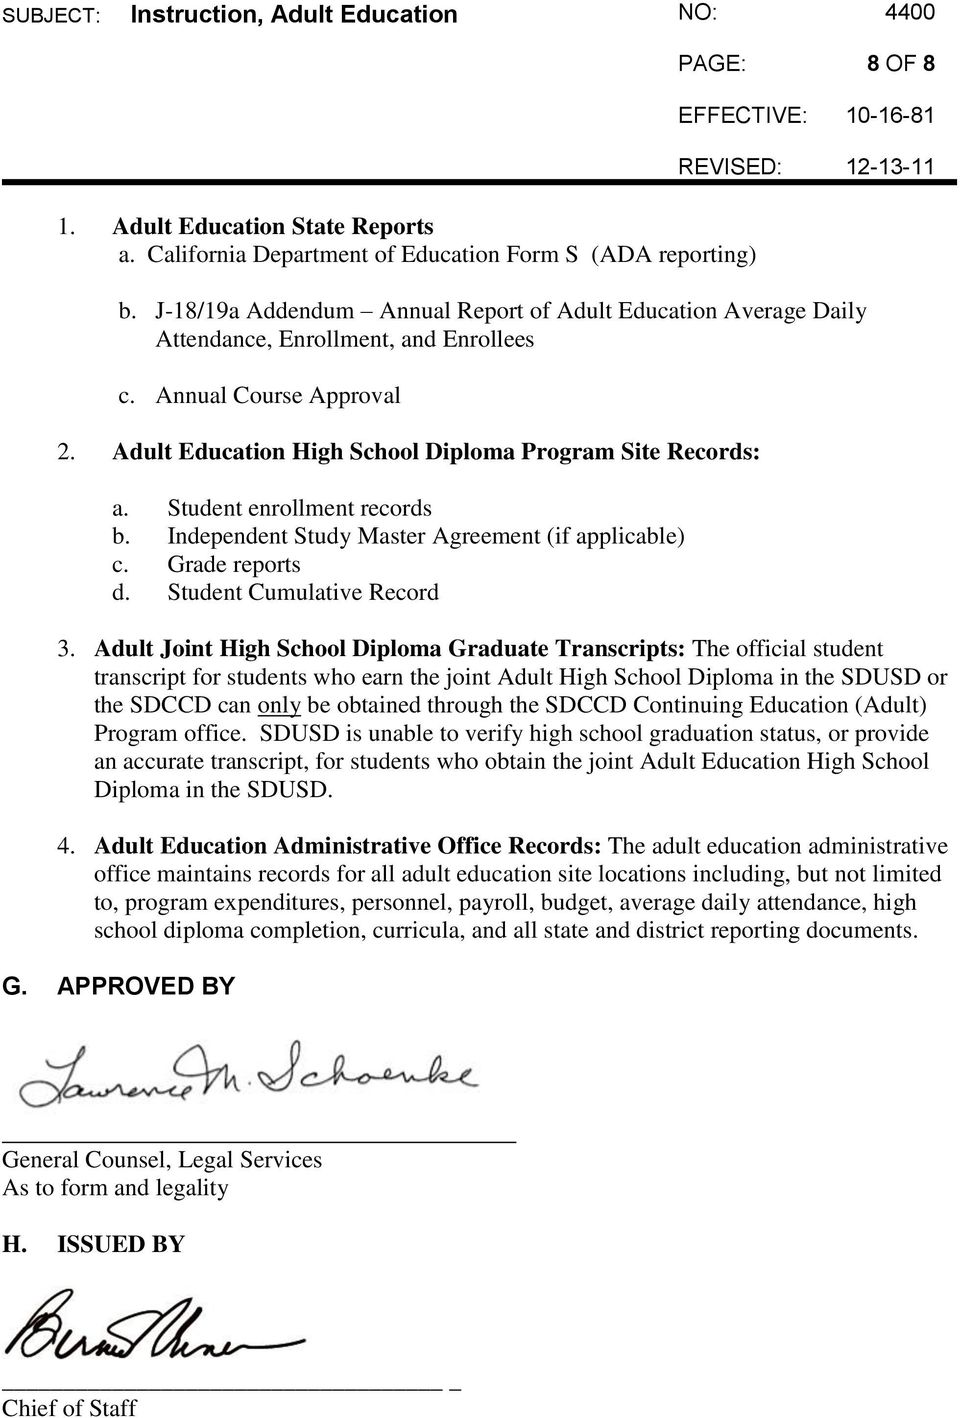 Student enrollment records b. Independent Study Master Agreement (if applicable) c. Grade reports d. Student Cumulative Record 3.